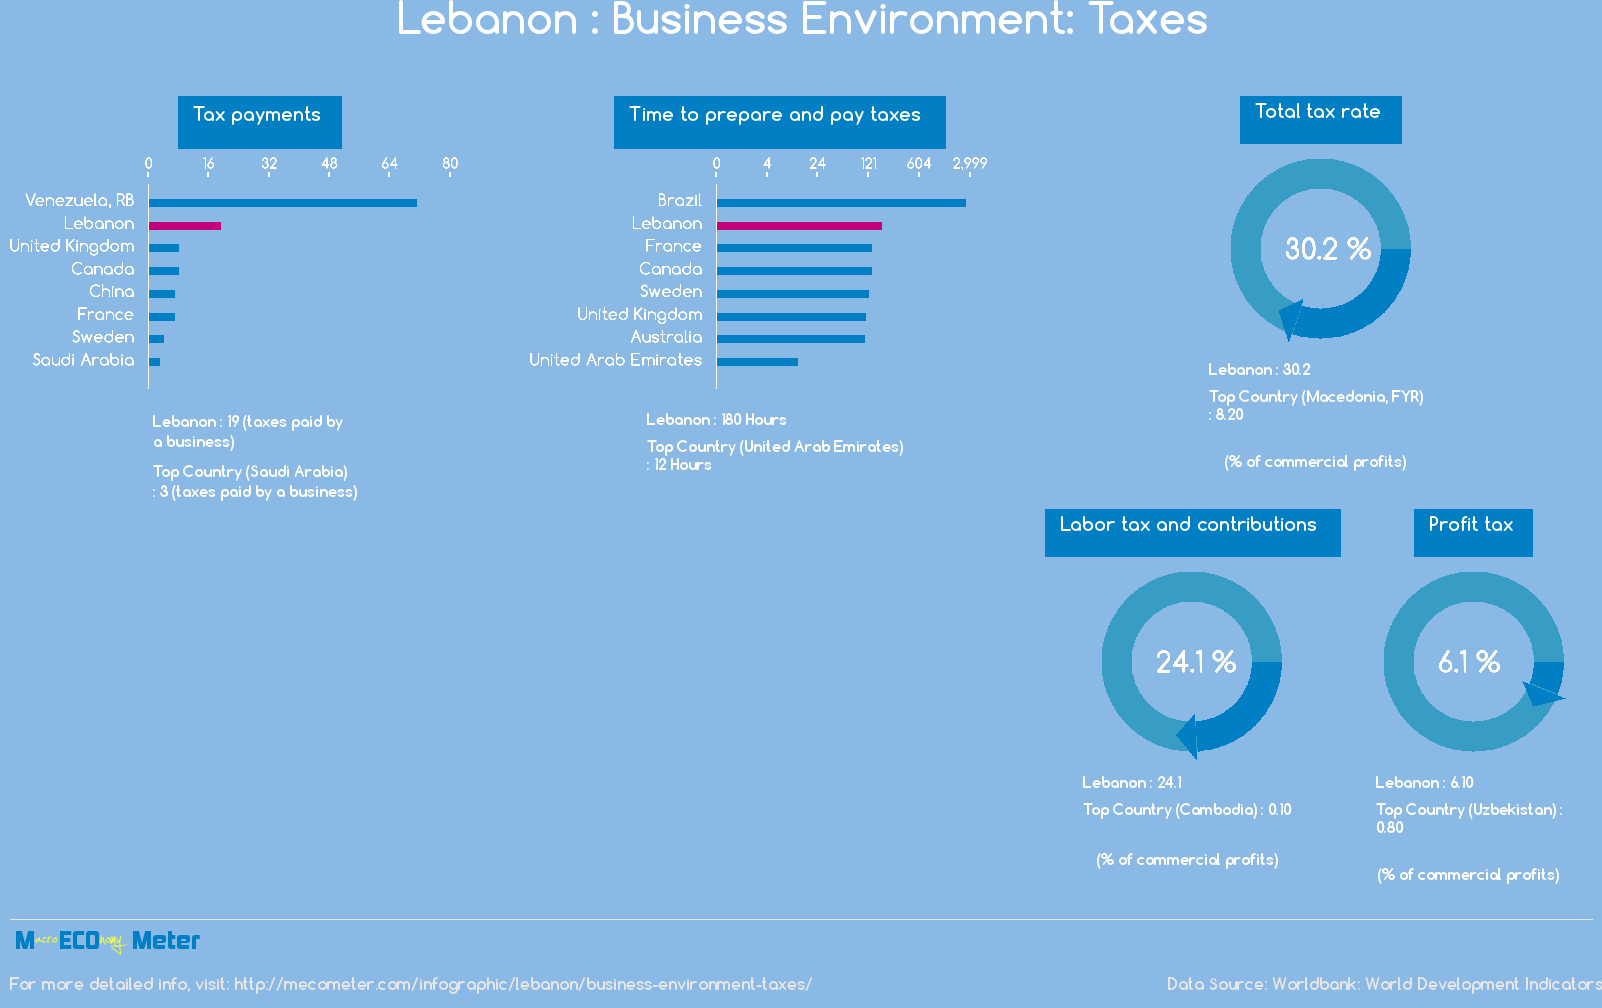 Lebanon : Business Environment: Taxes